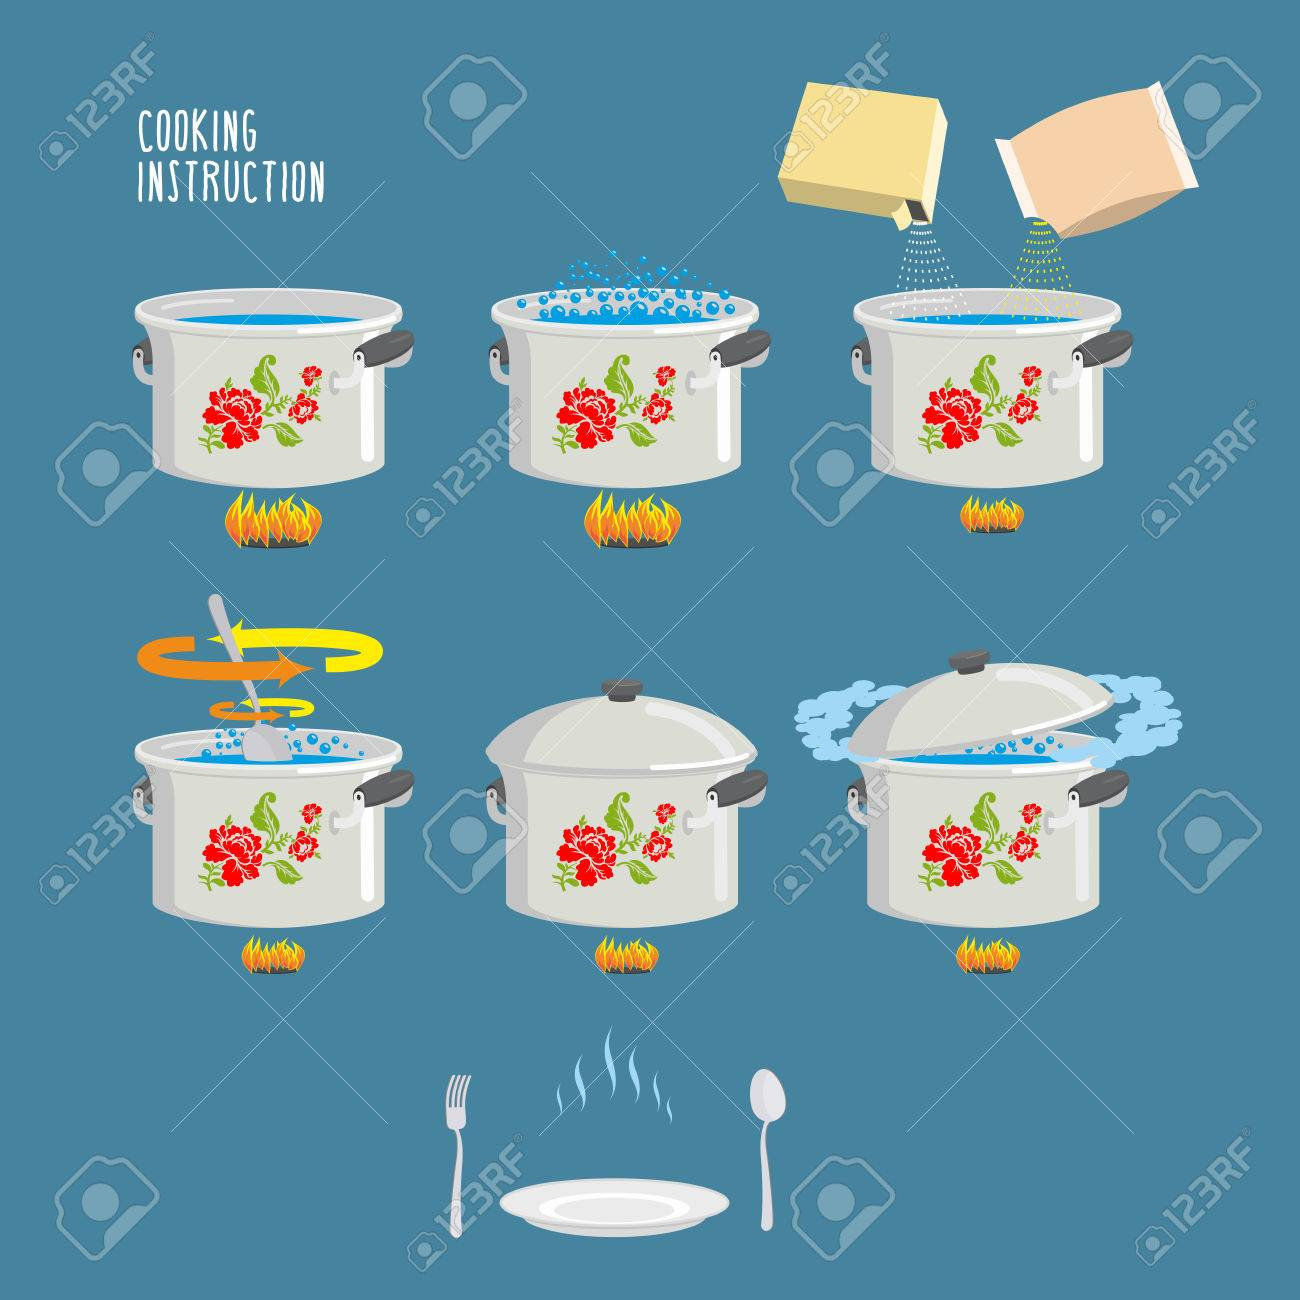 Instruction cooking. Home Cooking Recipe. cooking recipe, step..